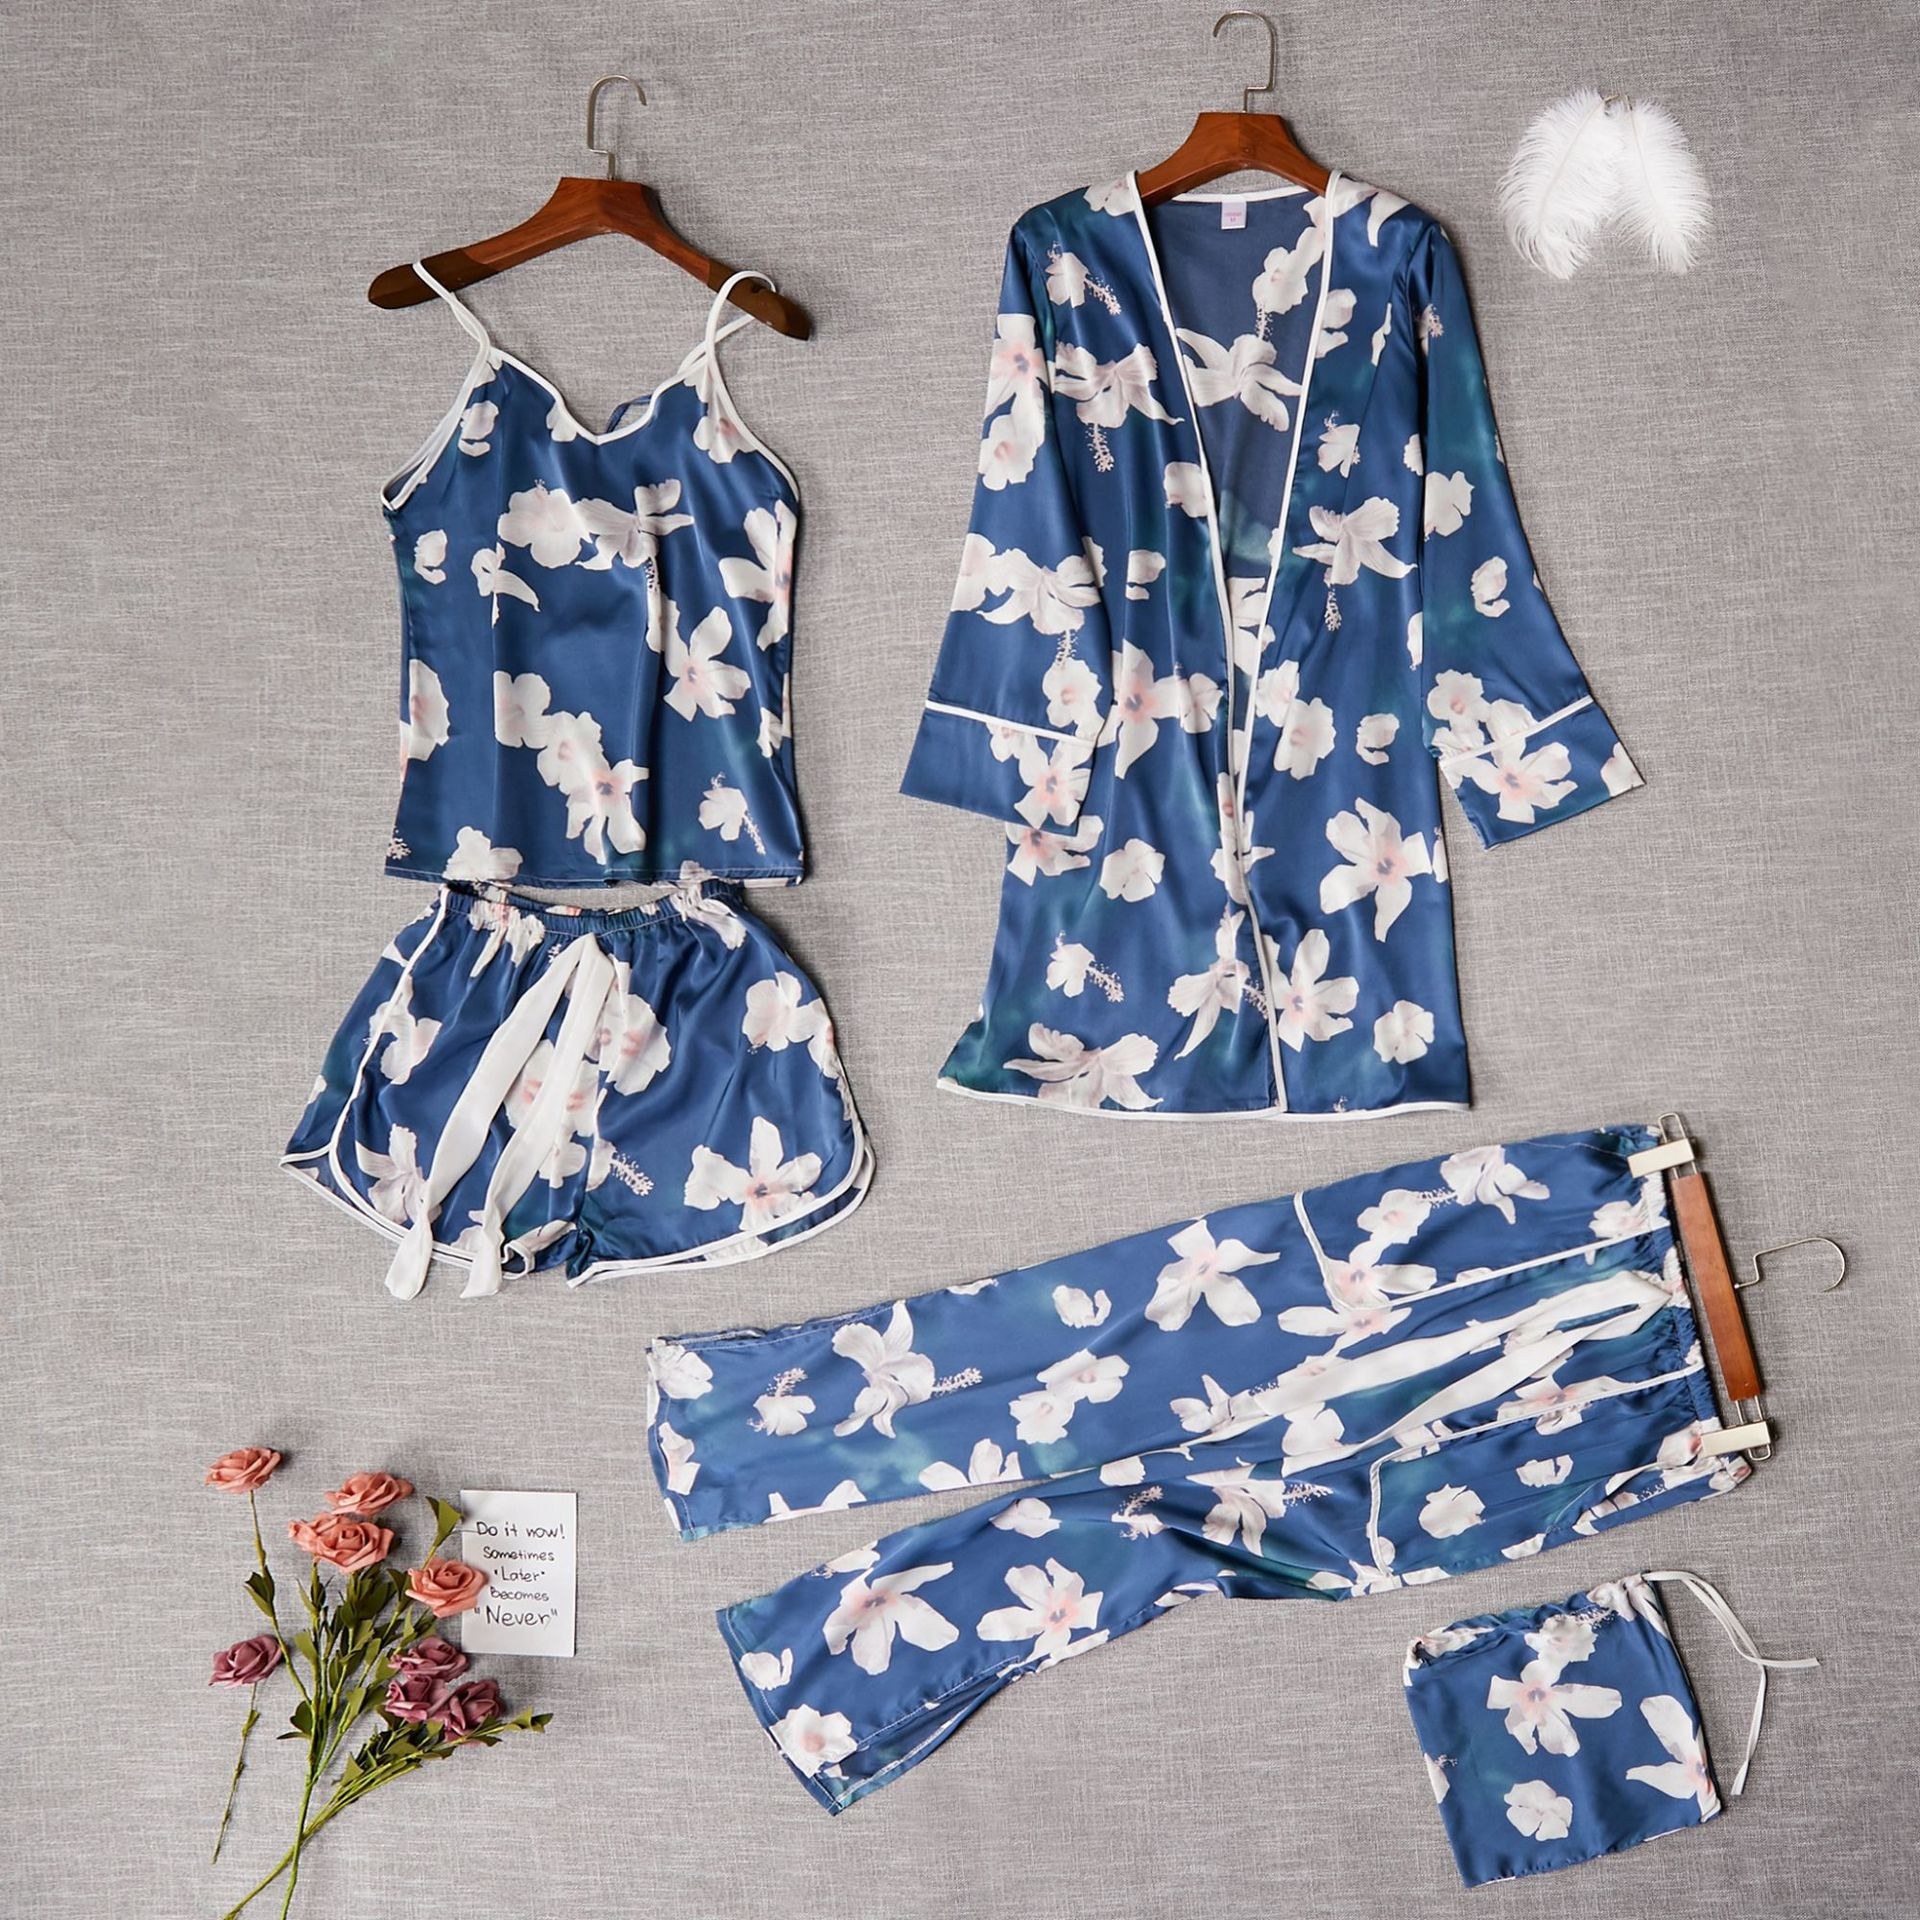 2020 New Satin Kimono Robe Gown 5PCS Pajamas Set Lady Bathrobe Sleepwear Sexy Print Flower Intimate Lingerie Pyjamas Nightwear